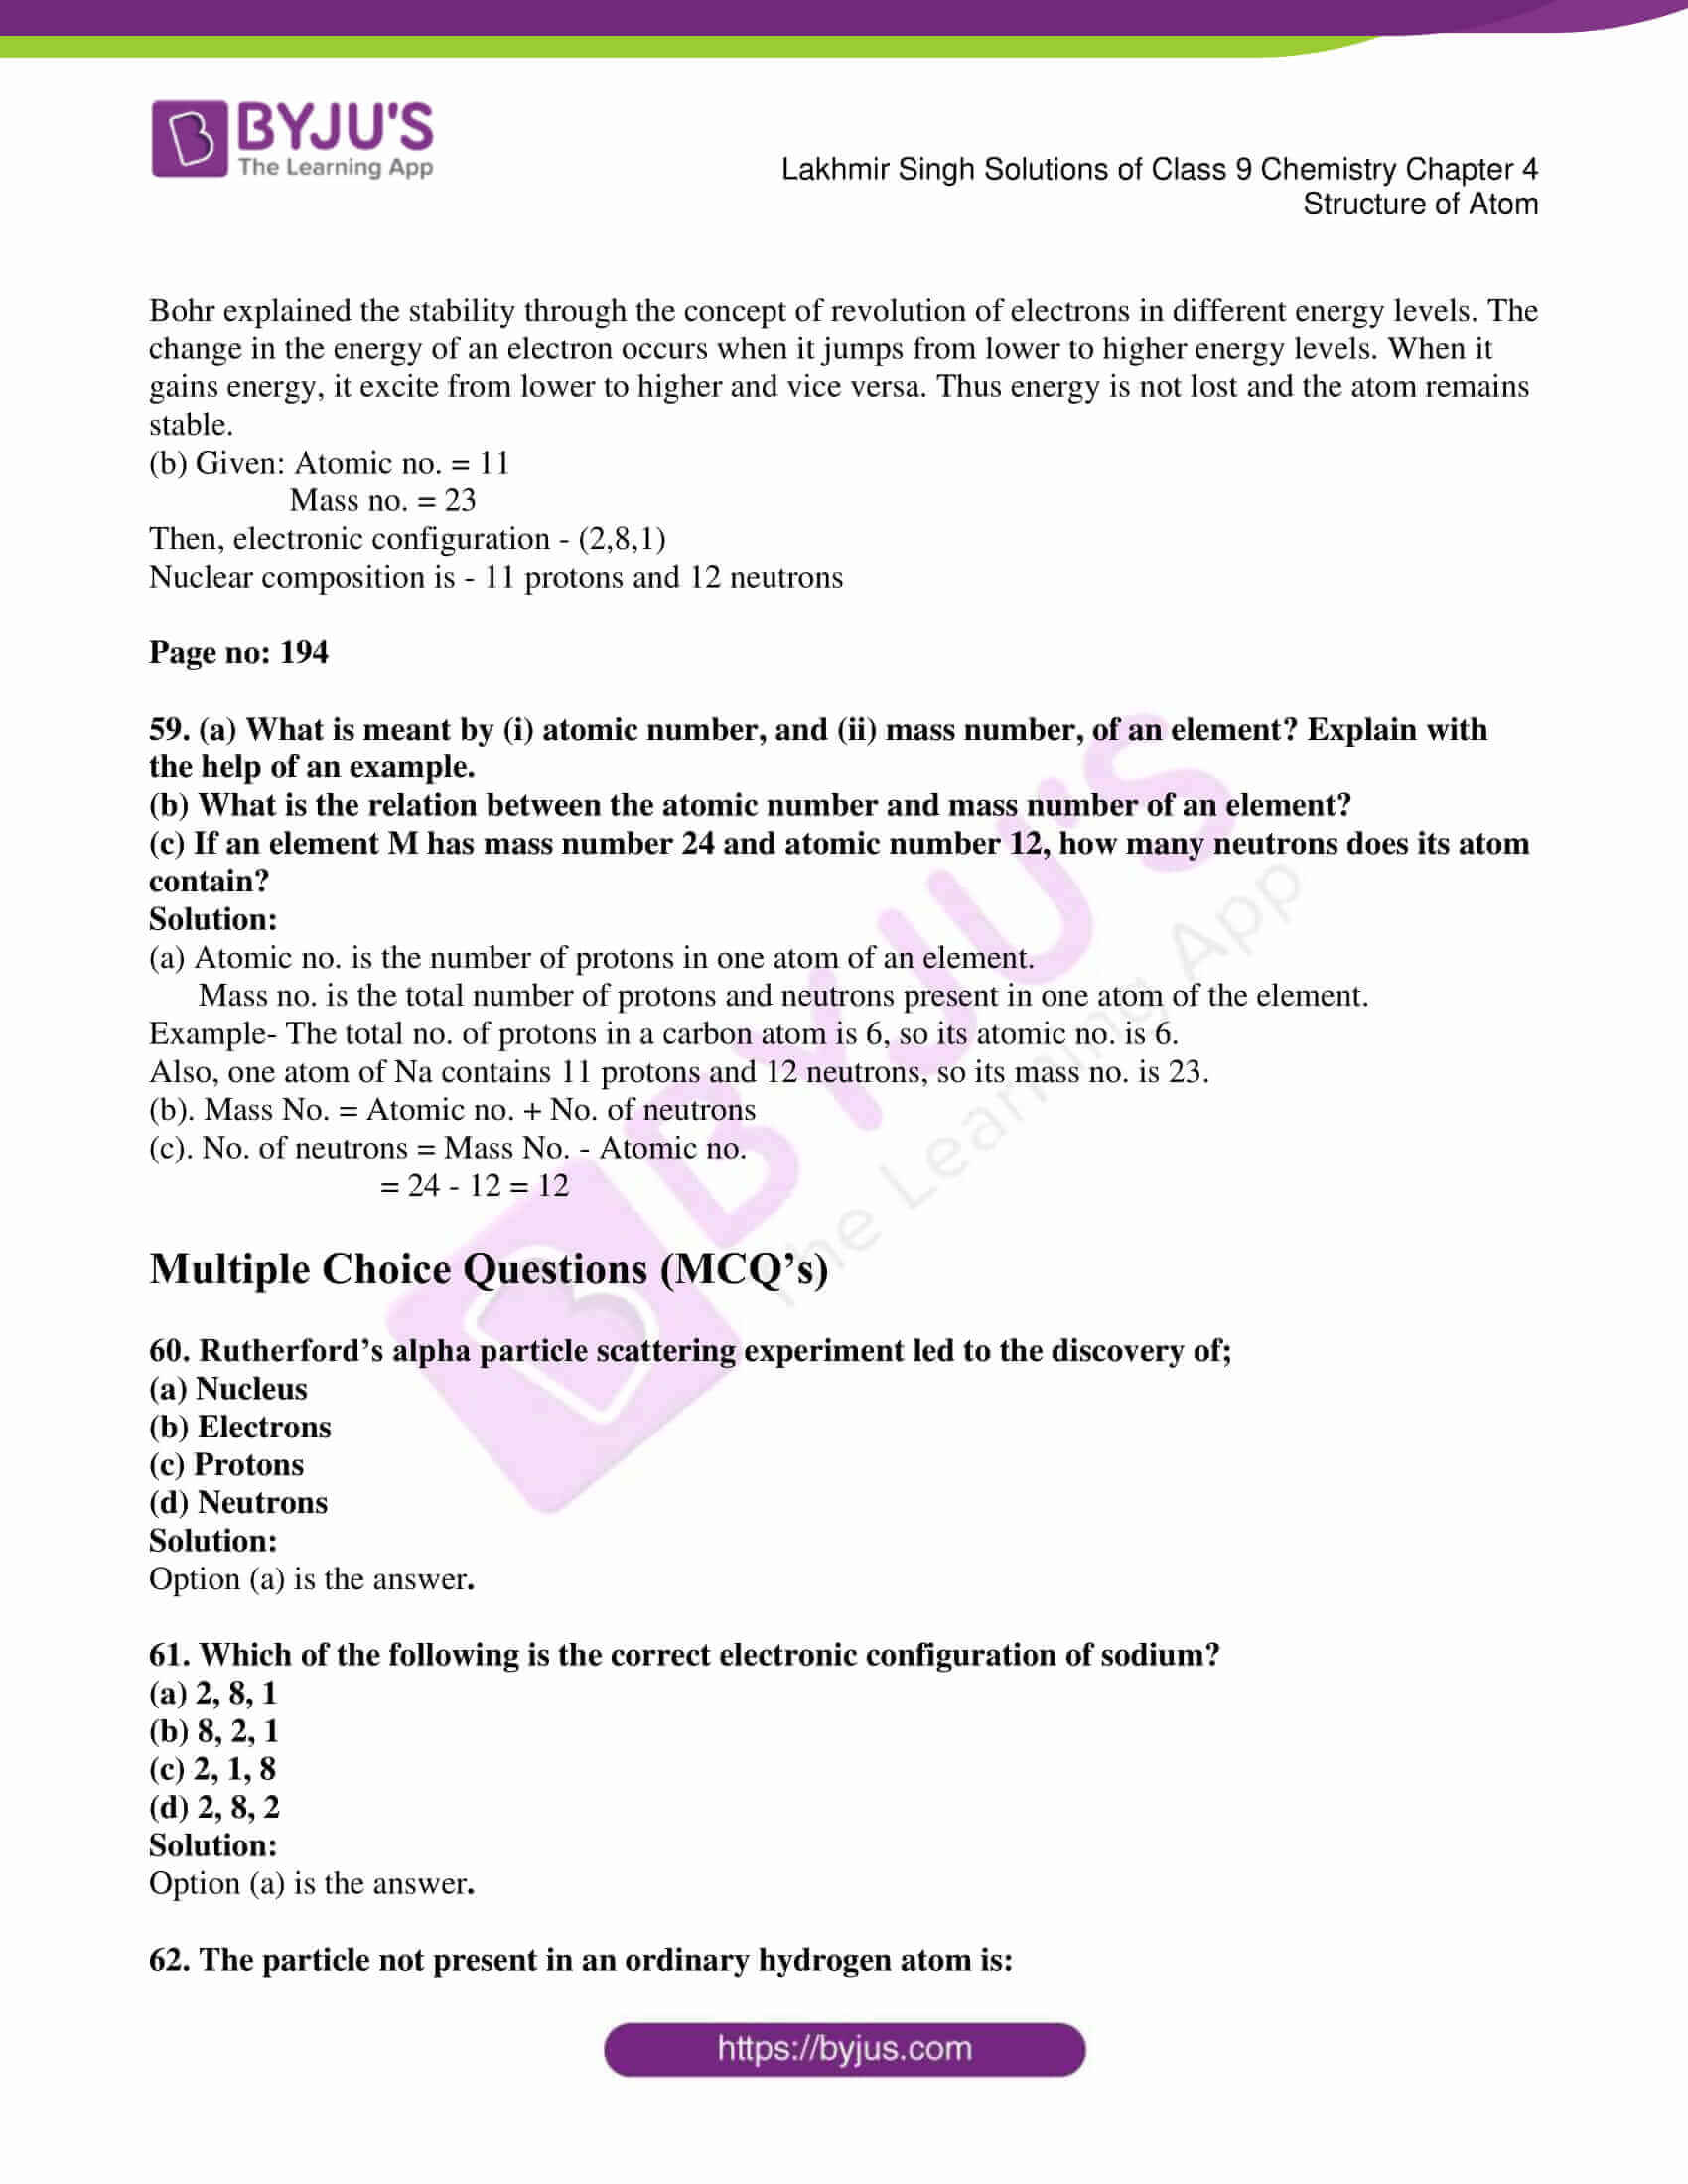 lakhmir singh solutions class 9 chemistry chapter 4 11